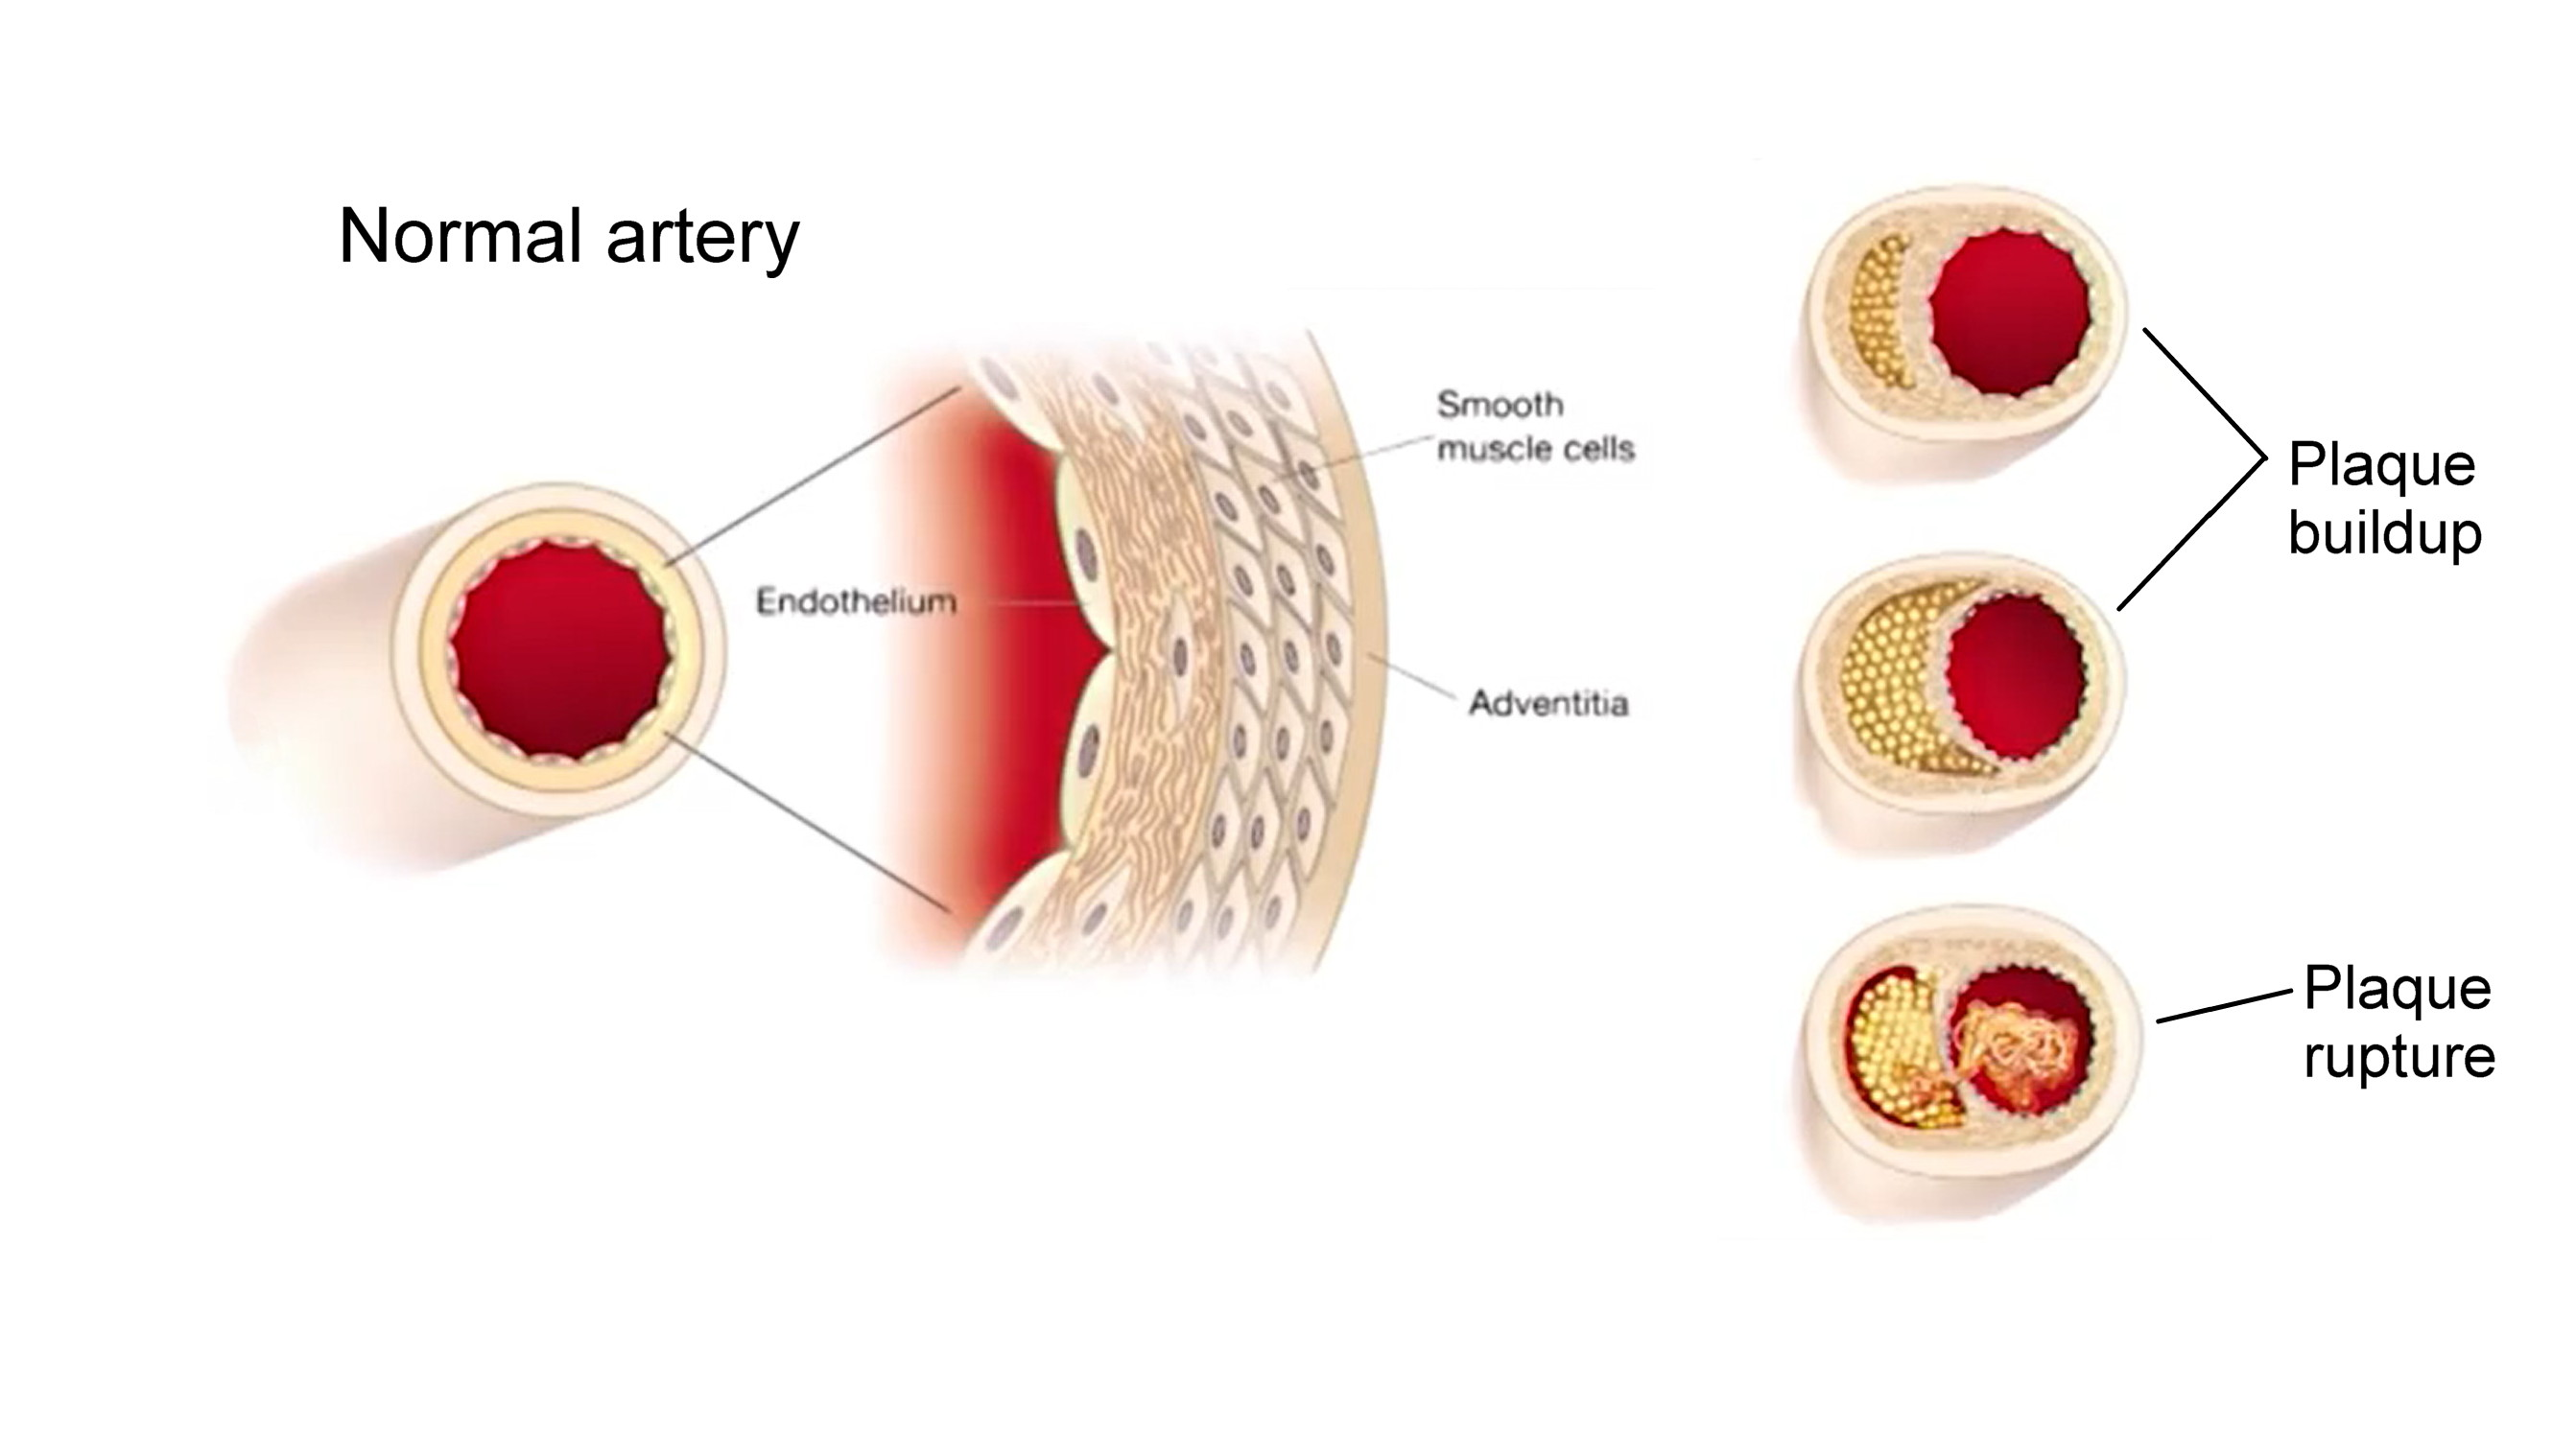 Normal artery, arteries with plaque, health implications of plaque on arteries